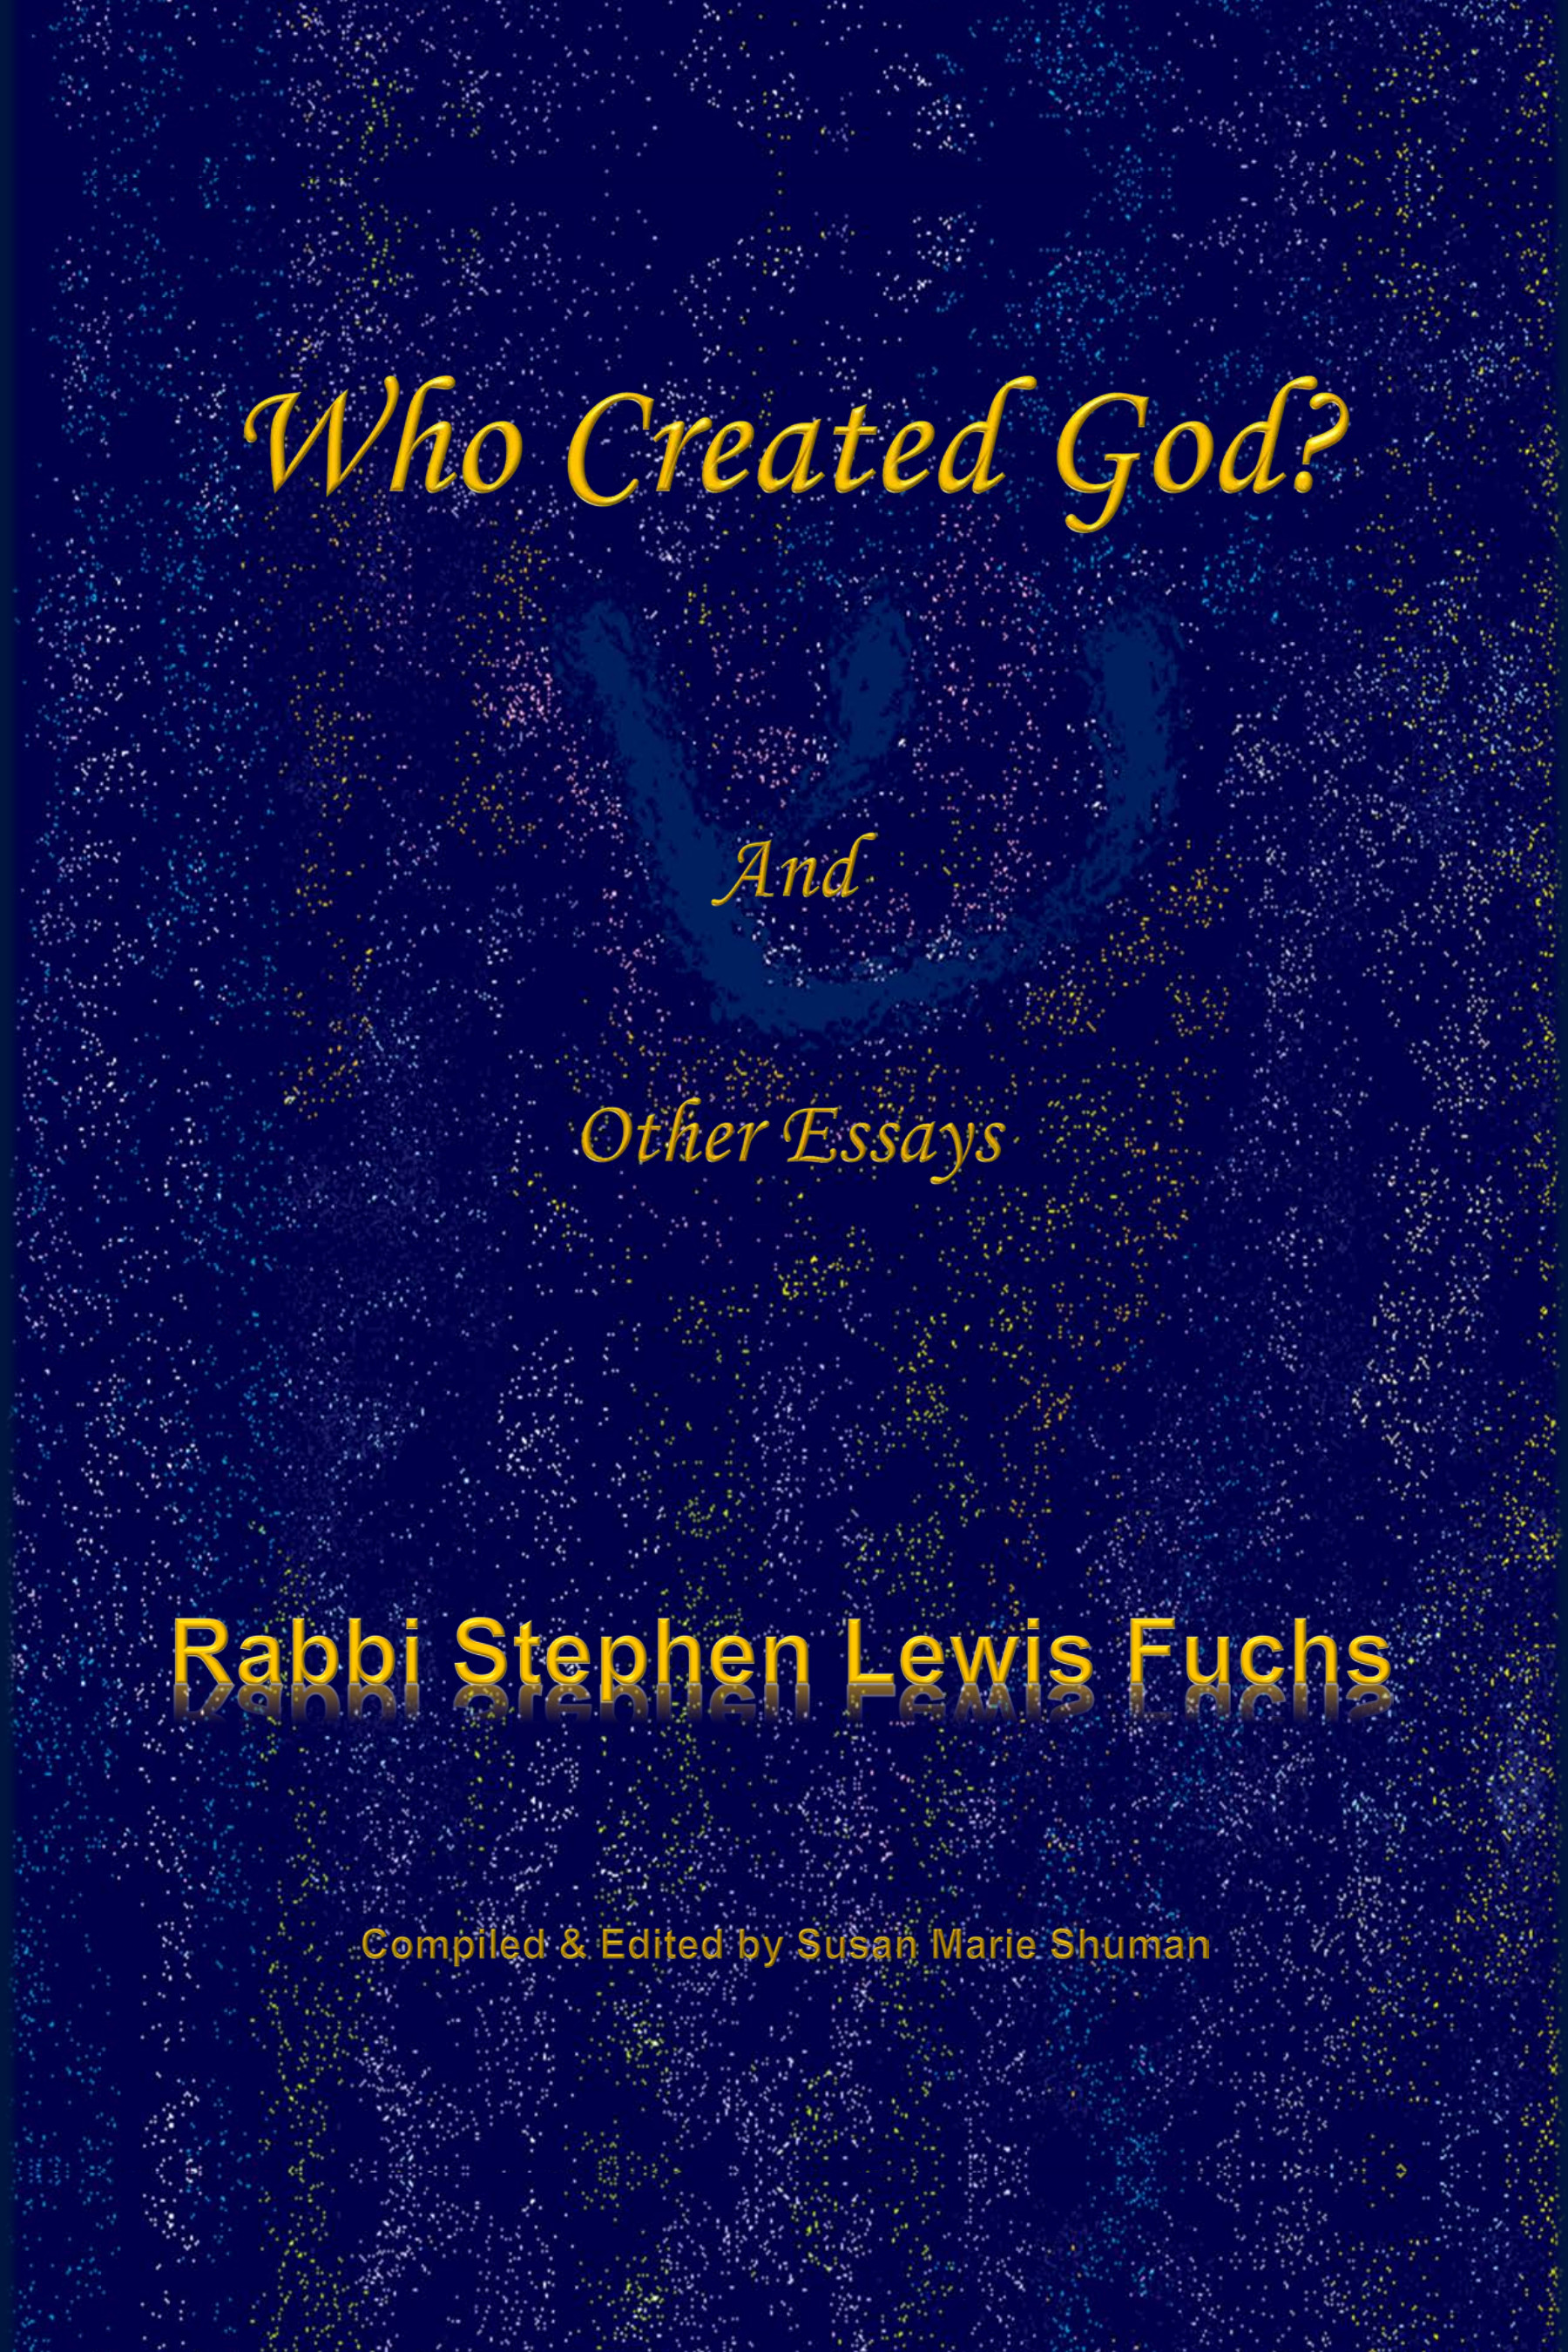 Who Created God, Rabbi Stephen Fuchs